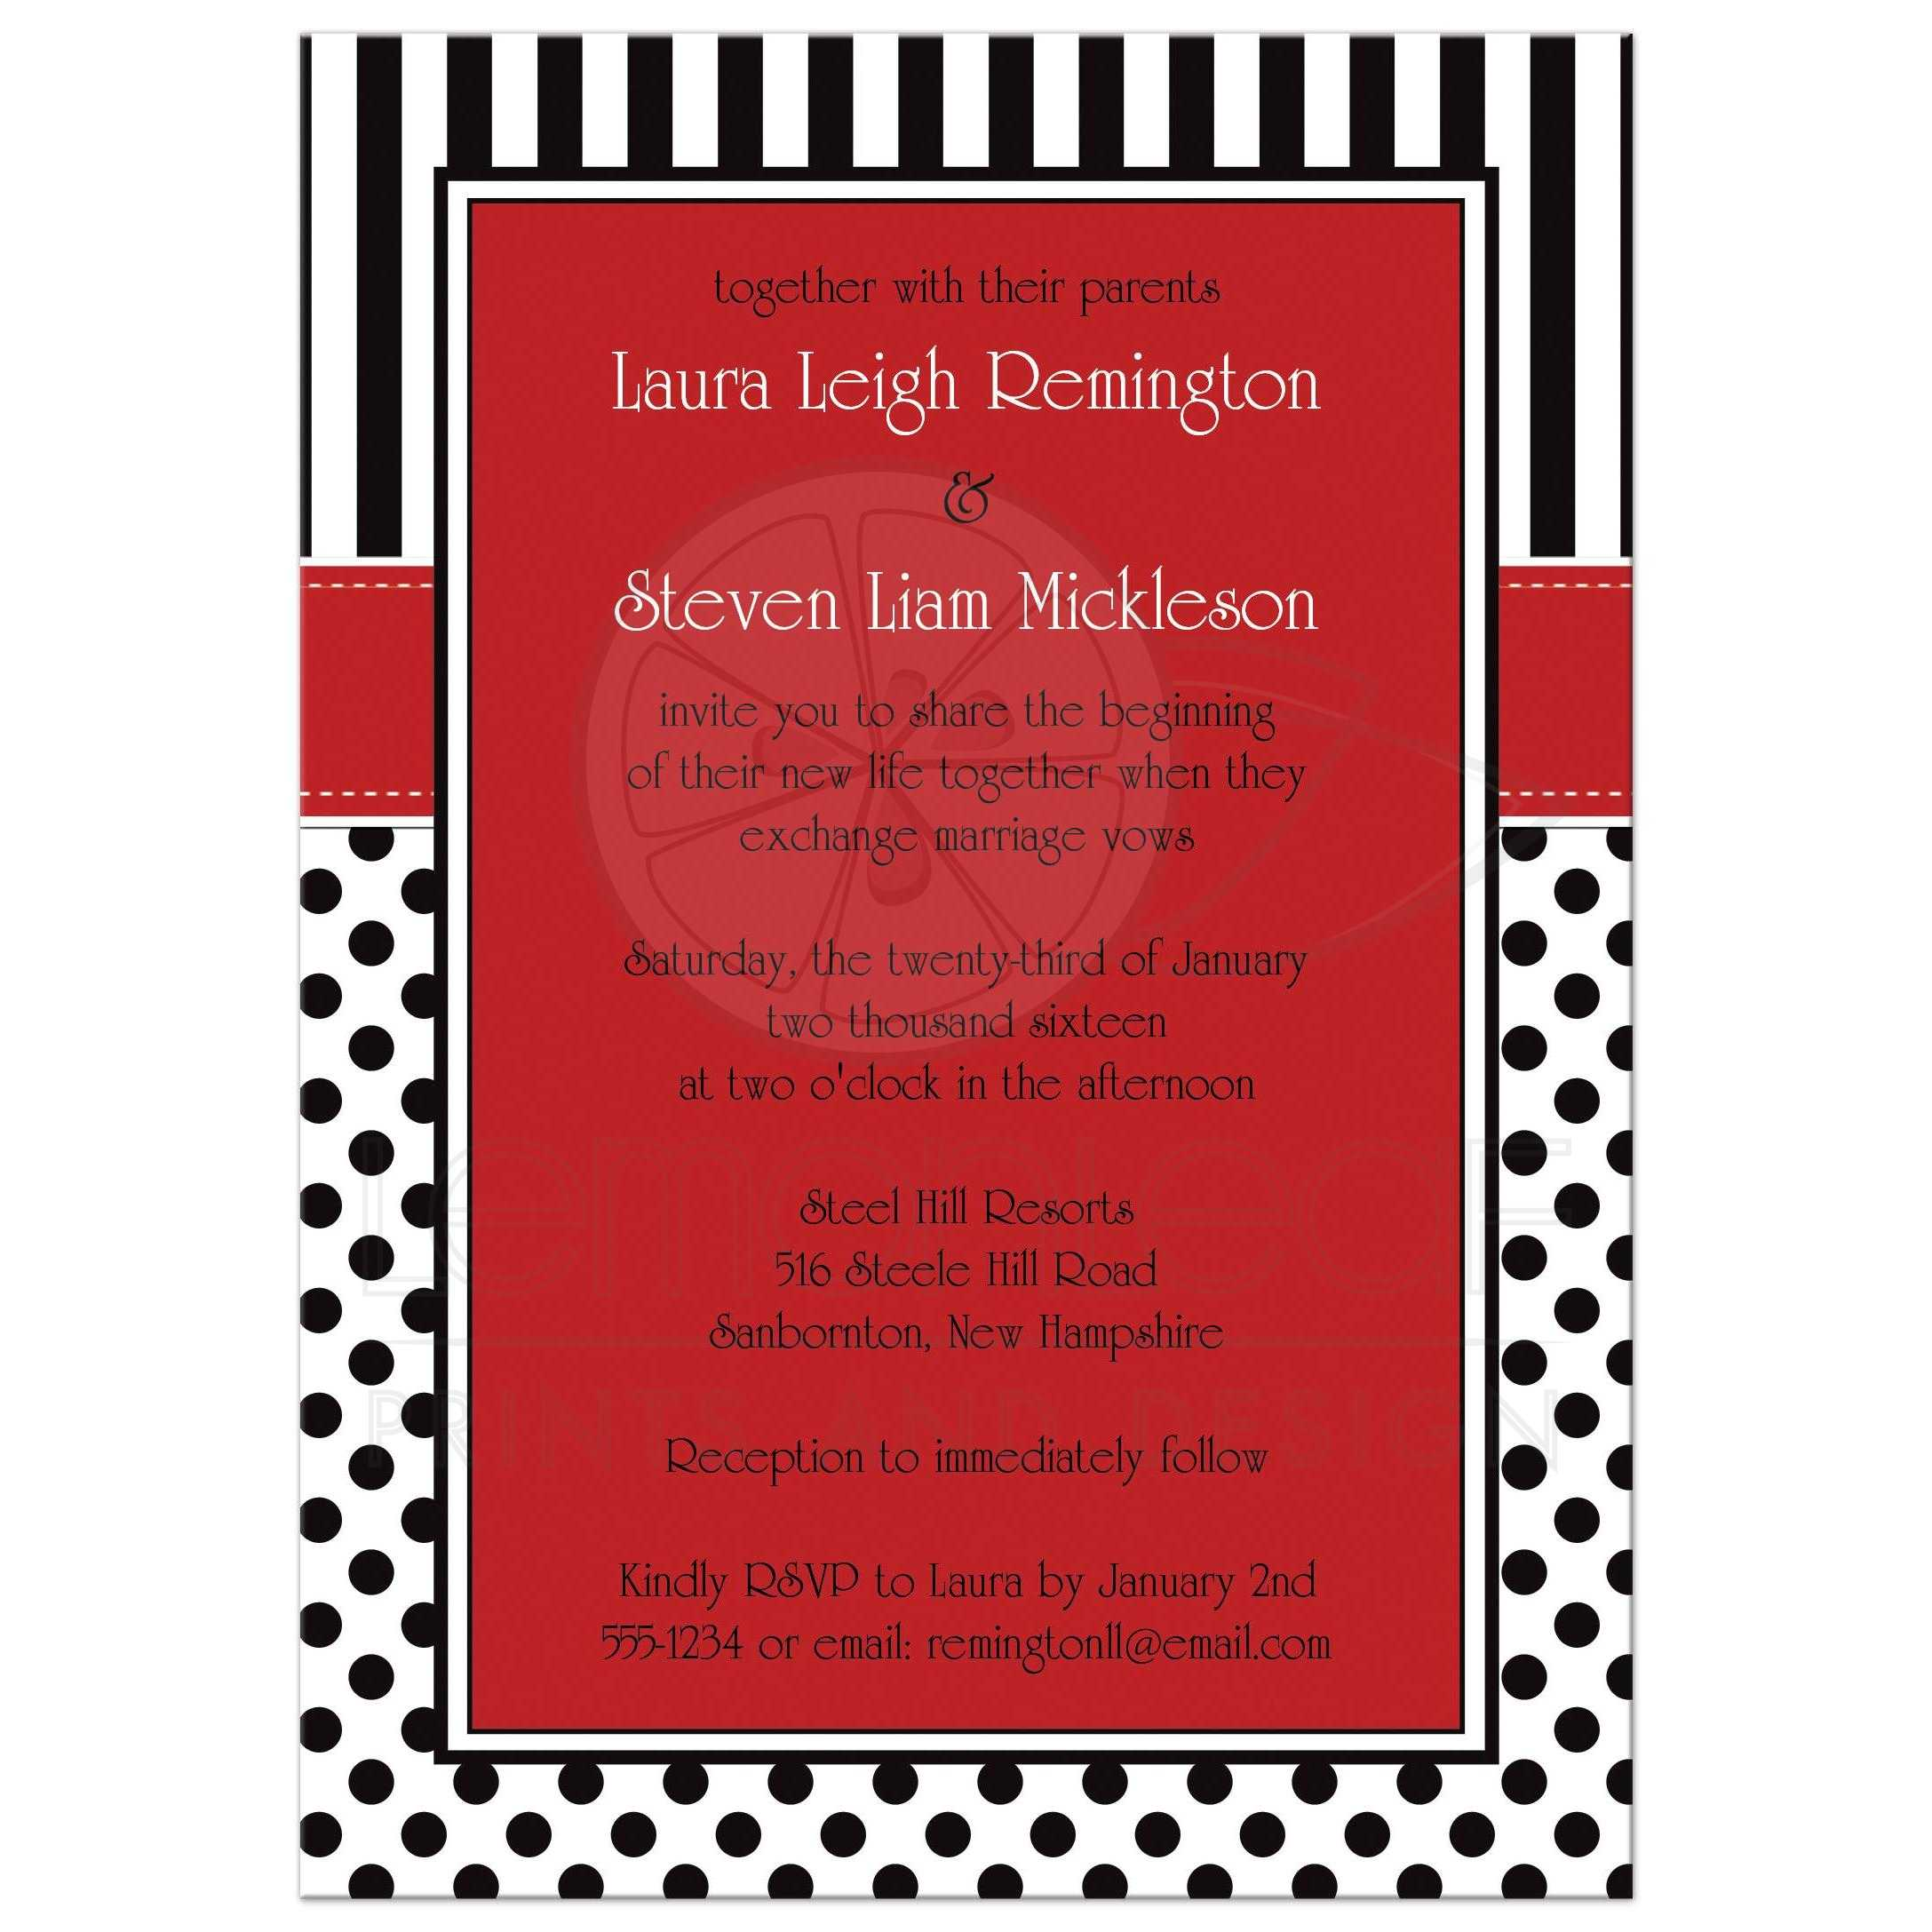 Wedding Invitation | Black, White, Red | Polka Dots and Stripes